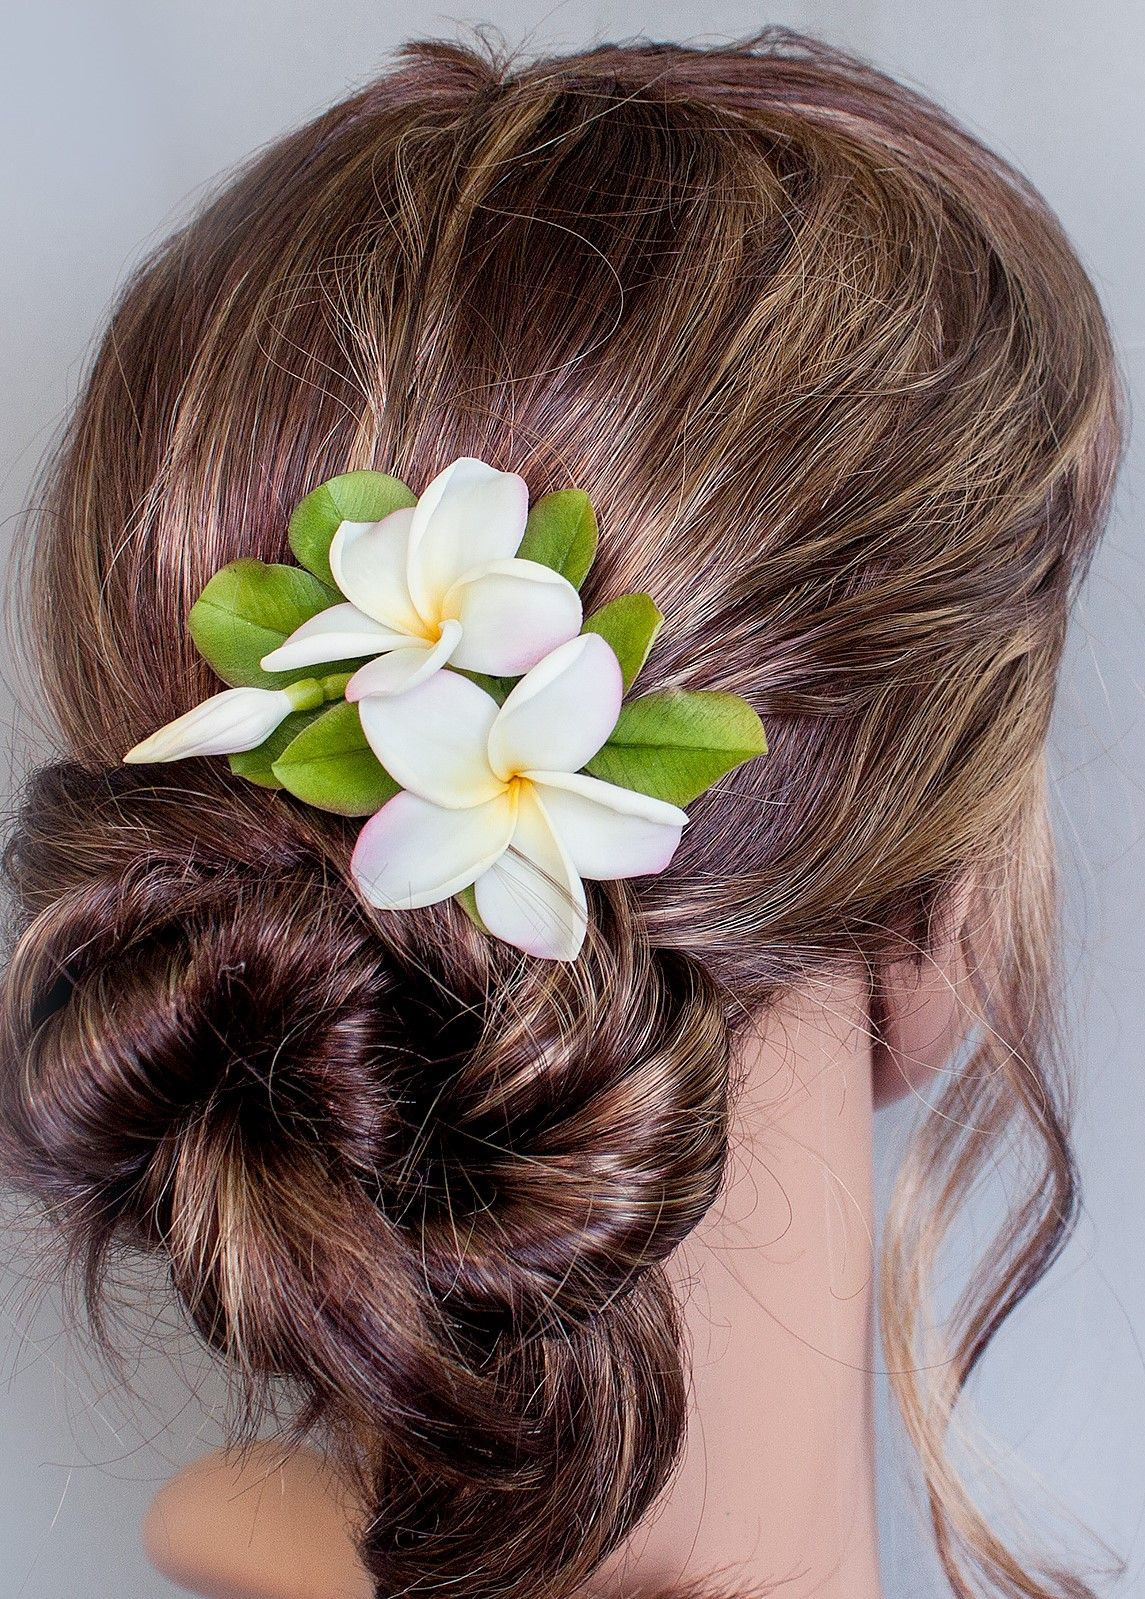 Hair Clip Plumeria Realistic Hawaiian Flower Bridal Hair Etsy In 2020 Floral Accessories Hair Bridal Hair Flowers Flowers In Hair